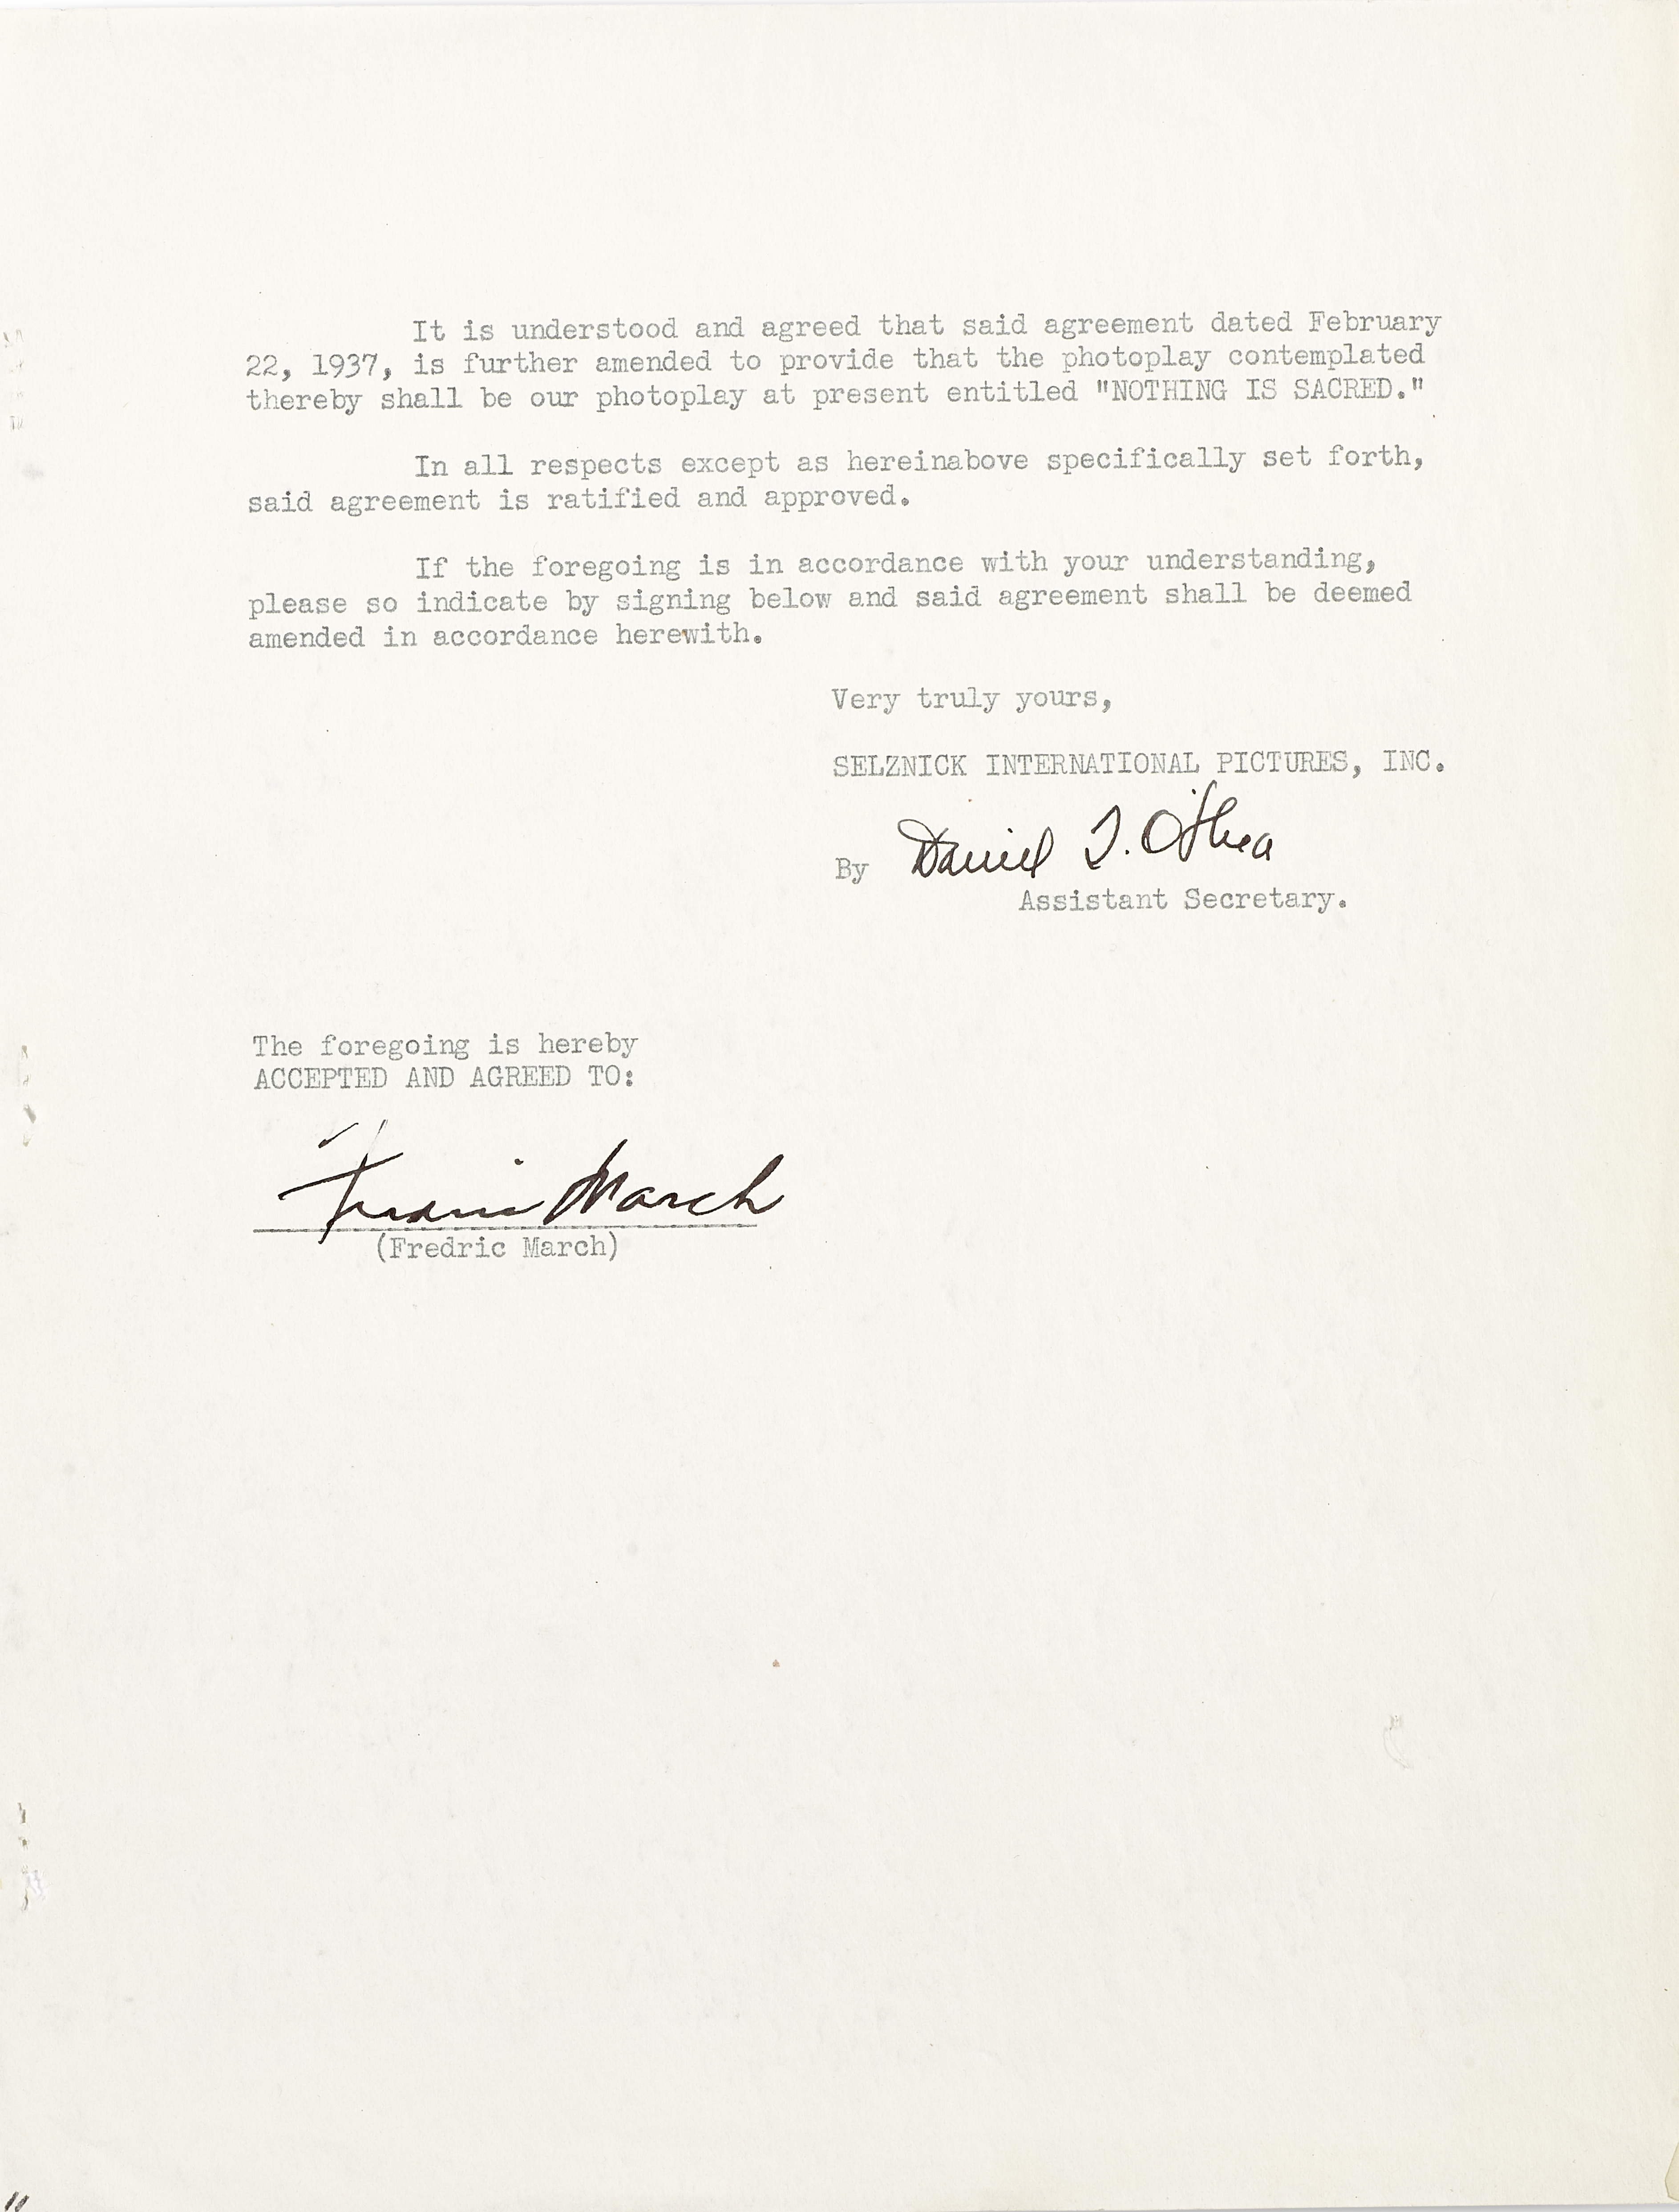 Lot 1021 - A Fredric March signed contract